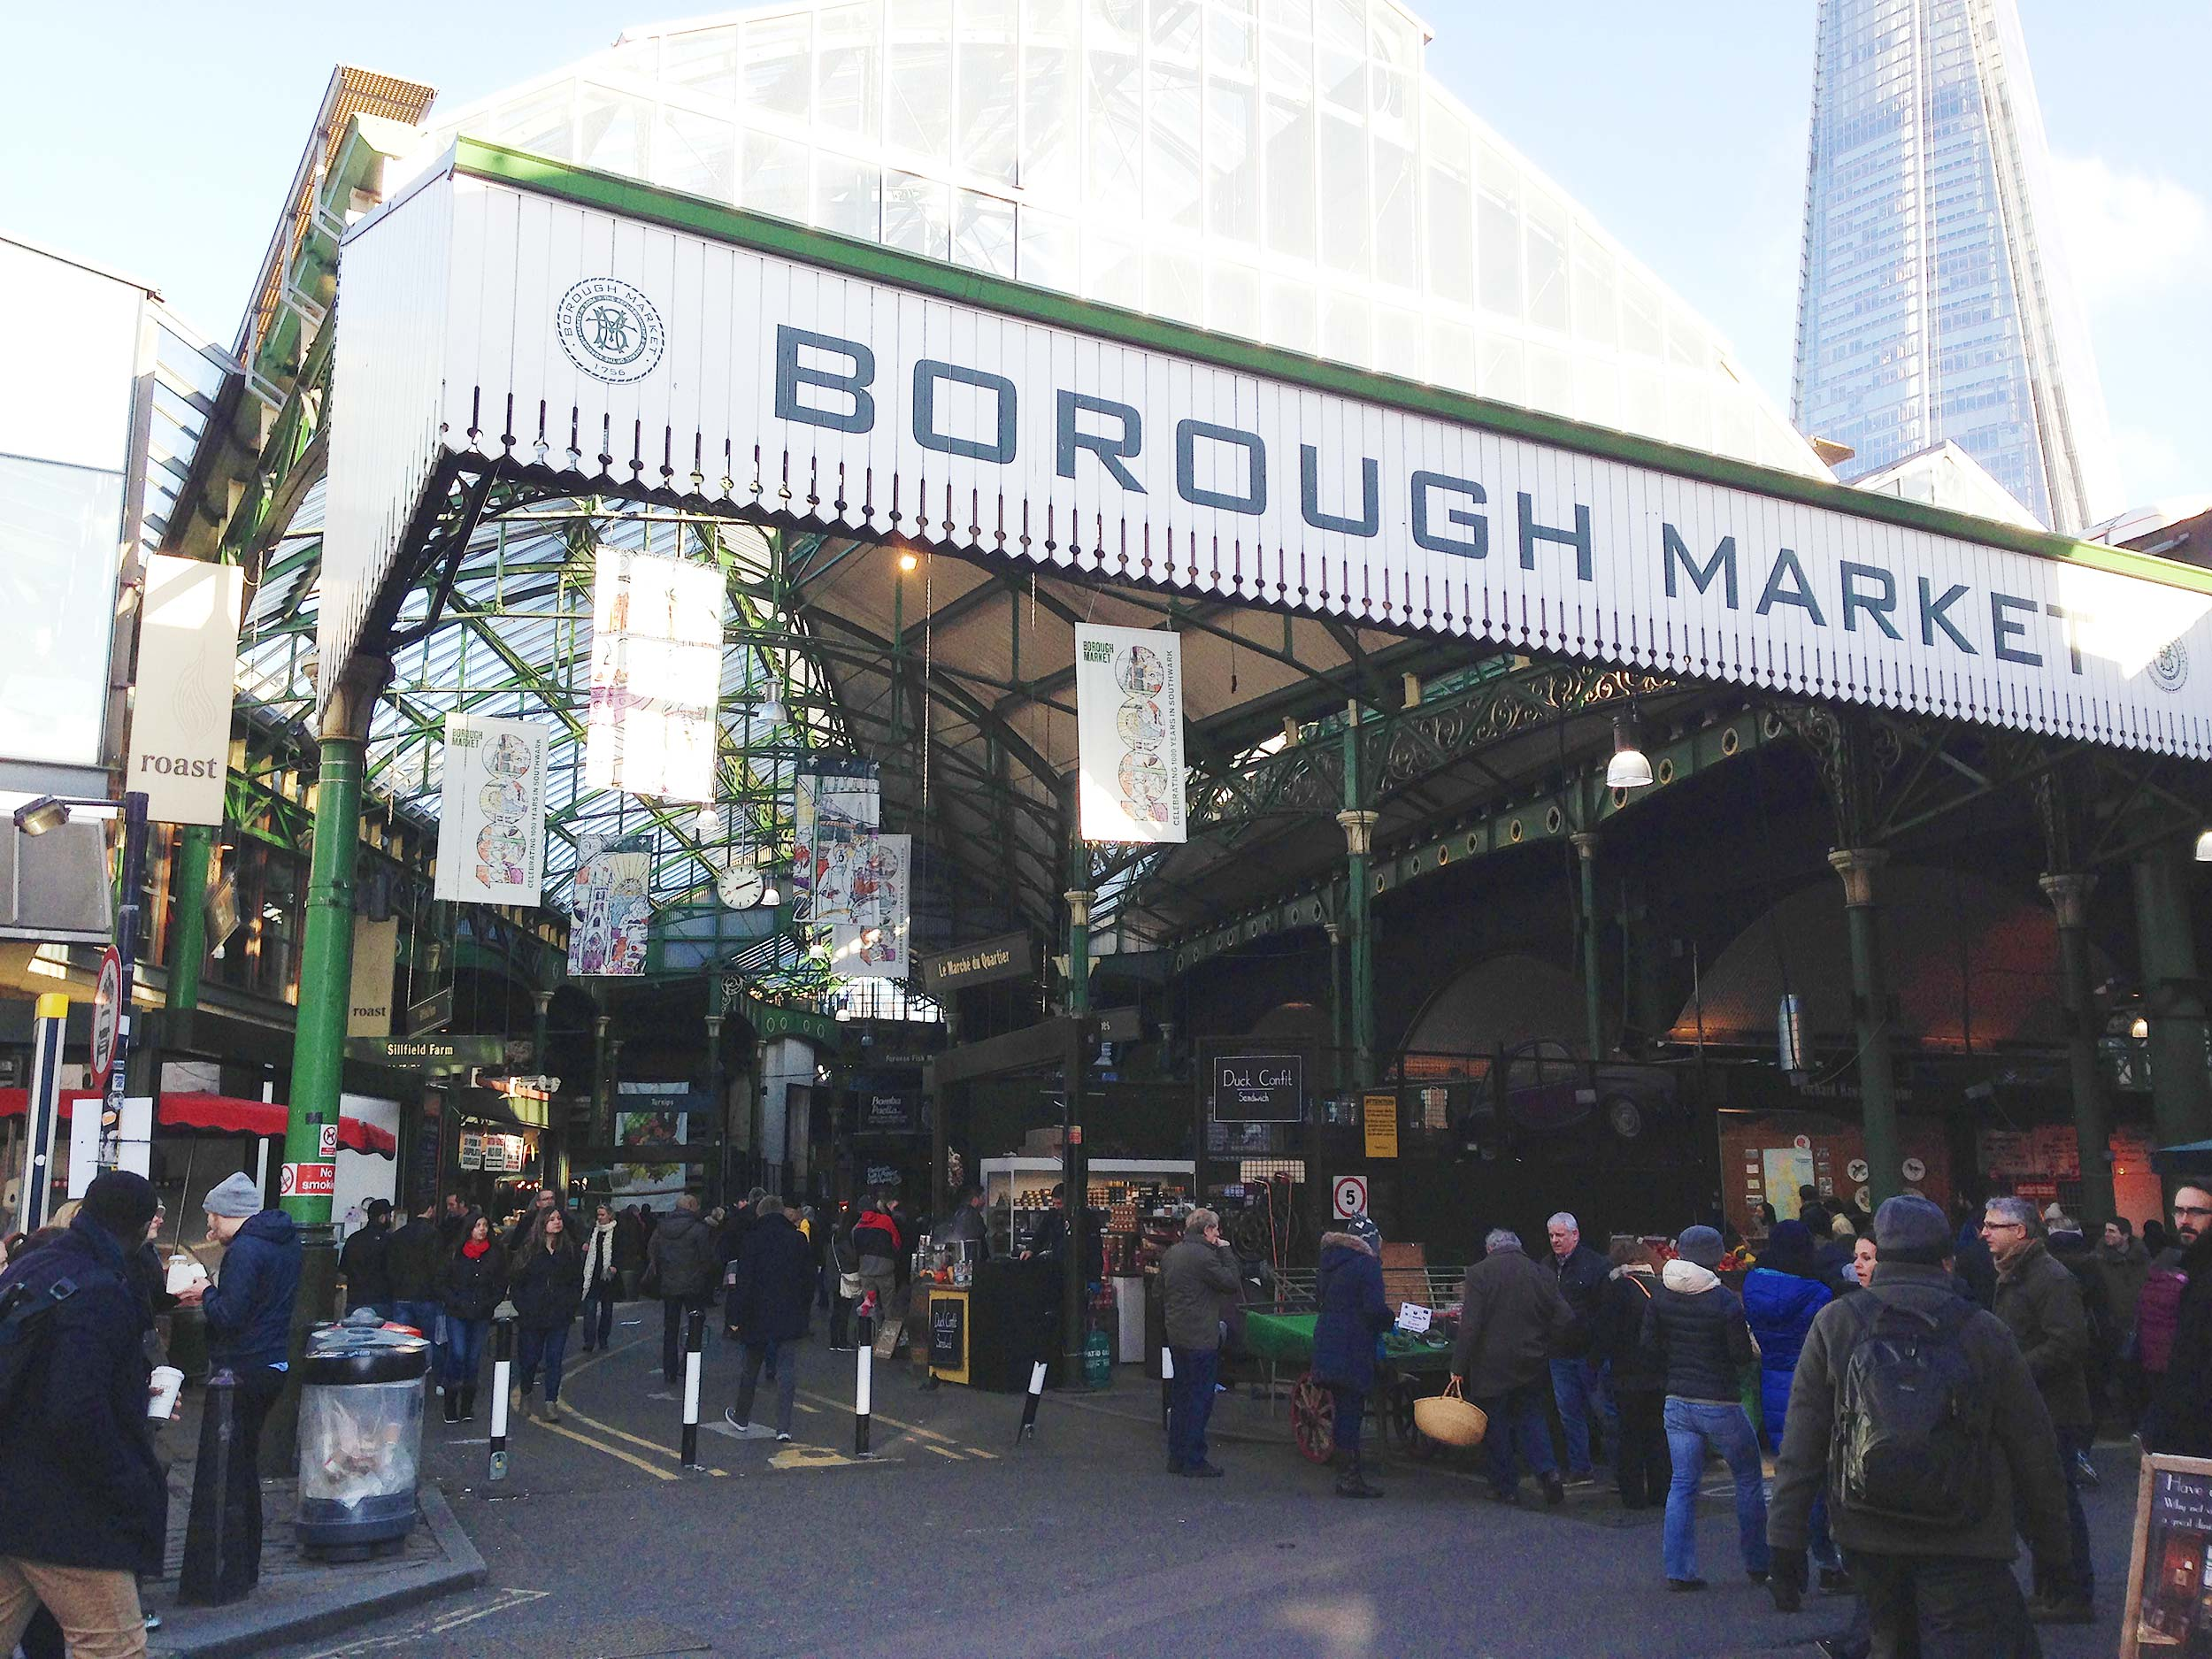 Borough Market at 1000 by James Oses, image 8